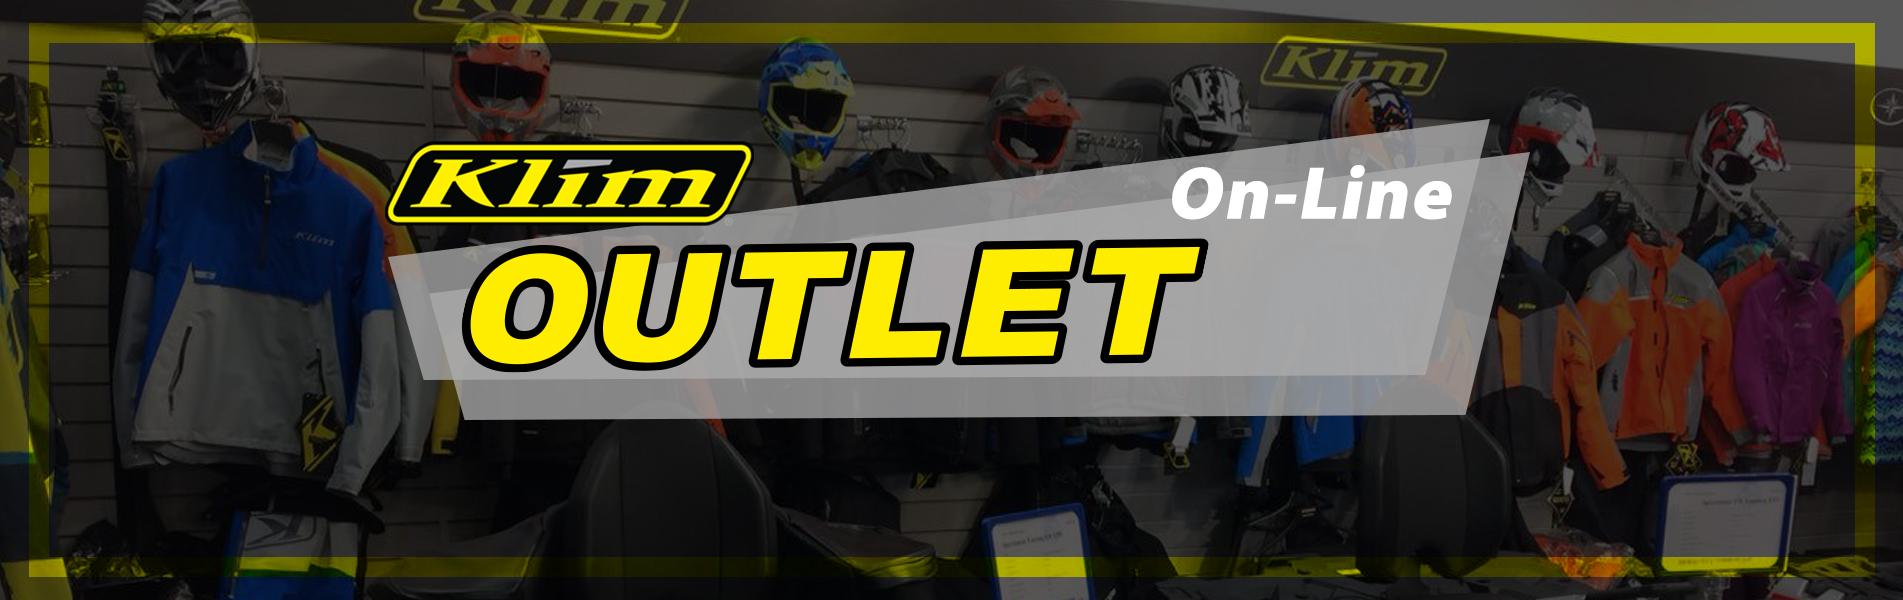 On-Line OUTLET Klim